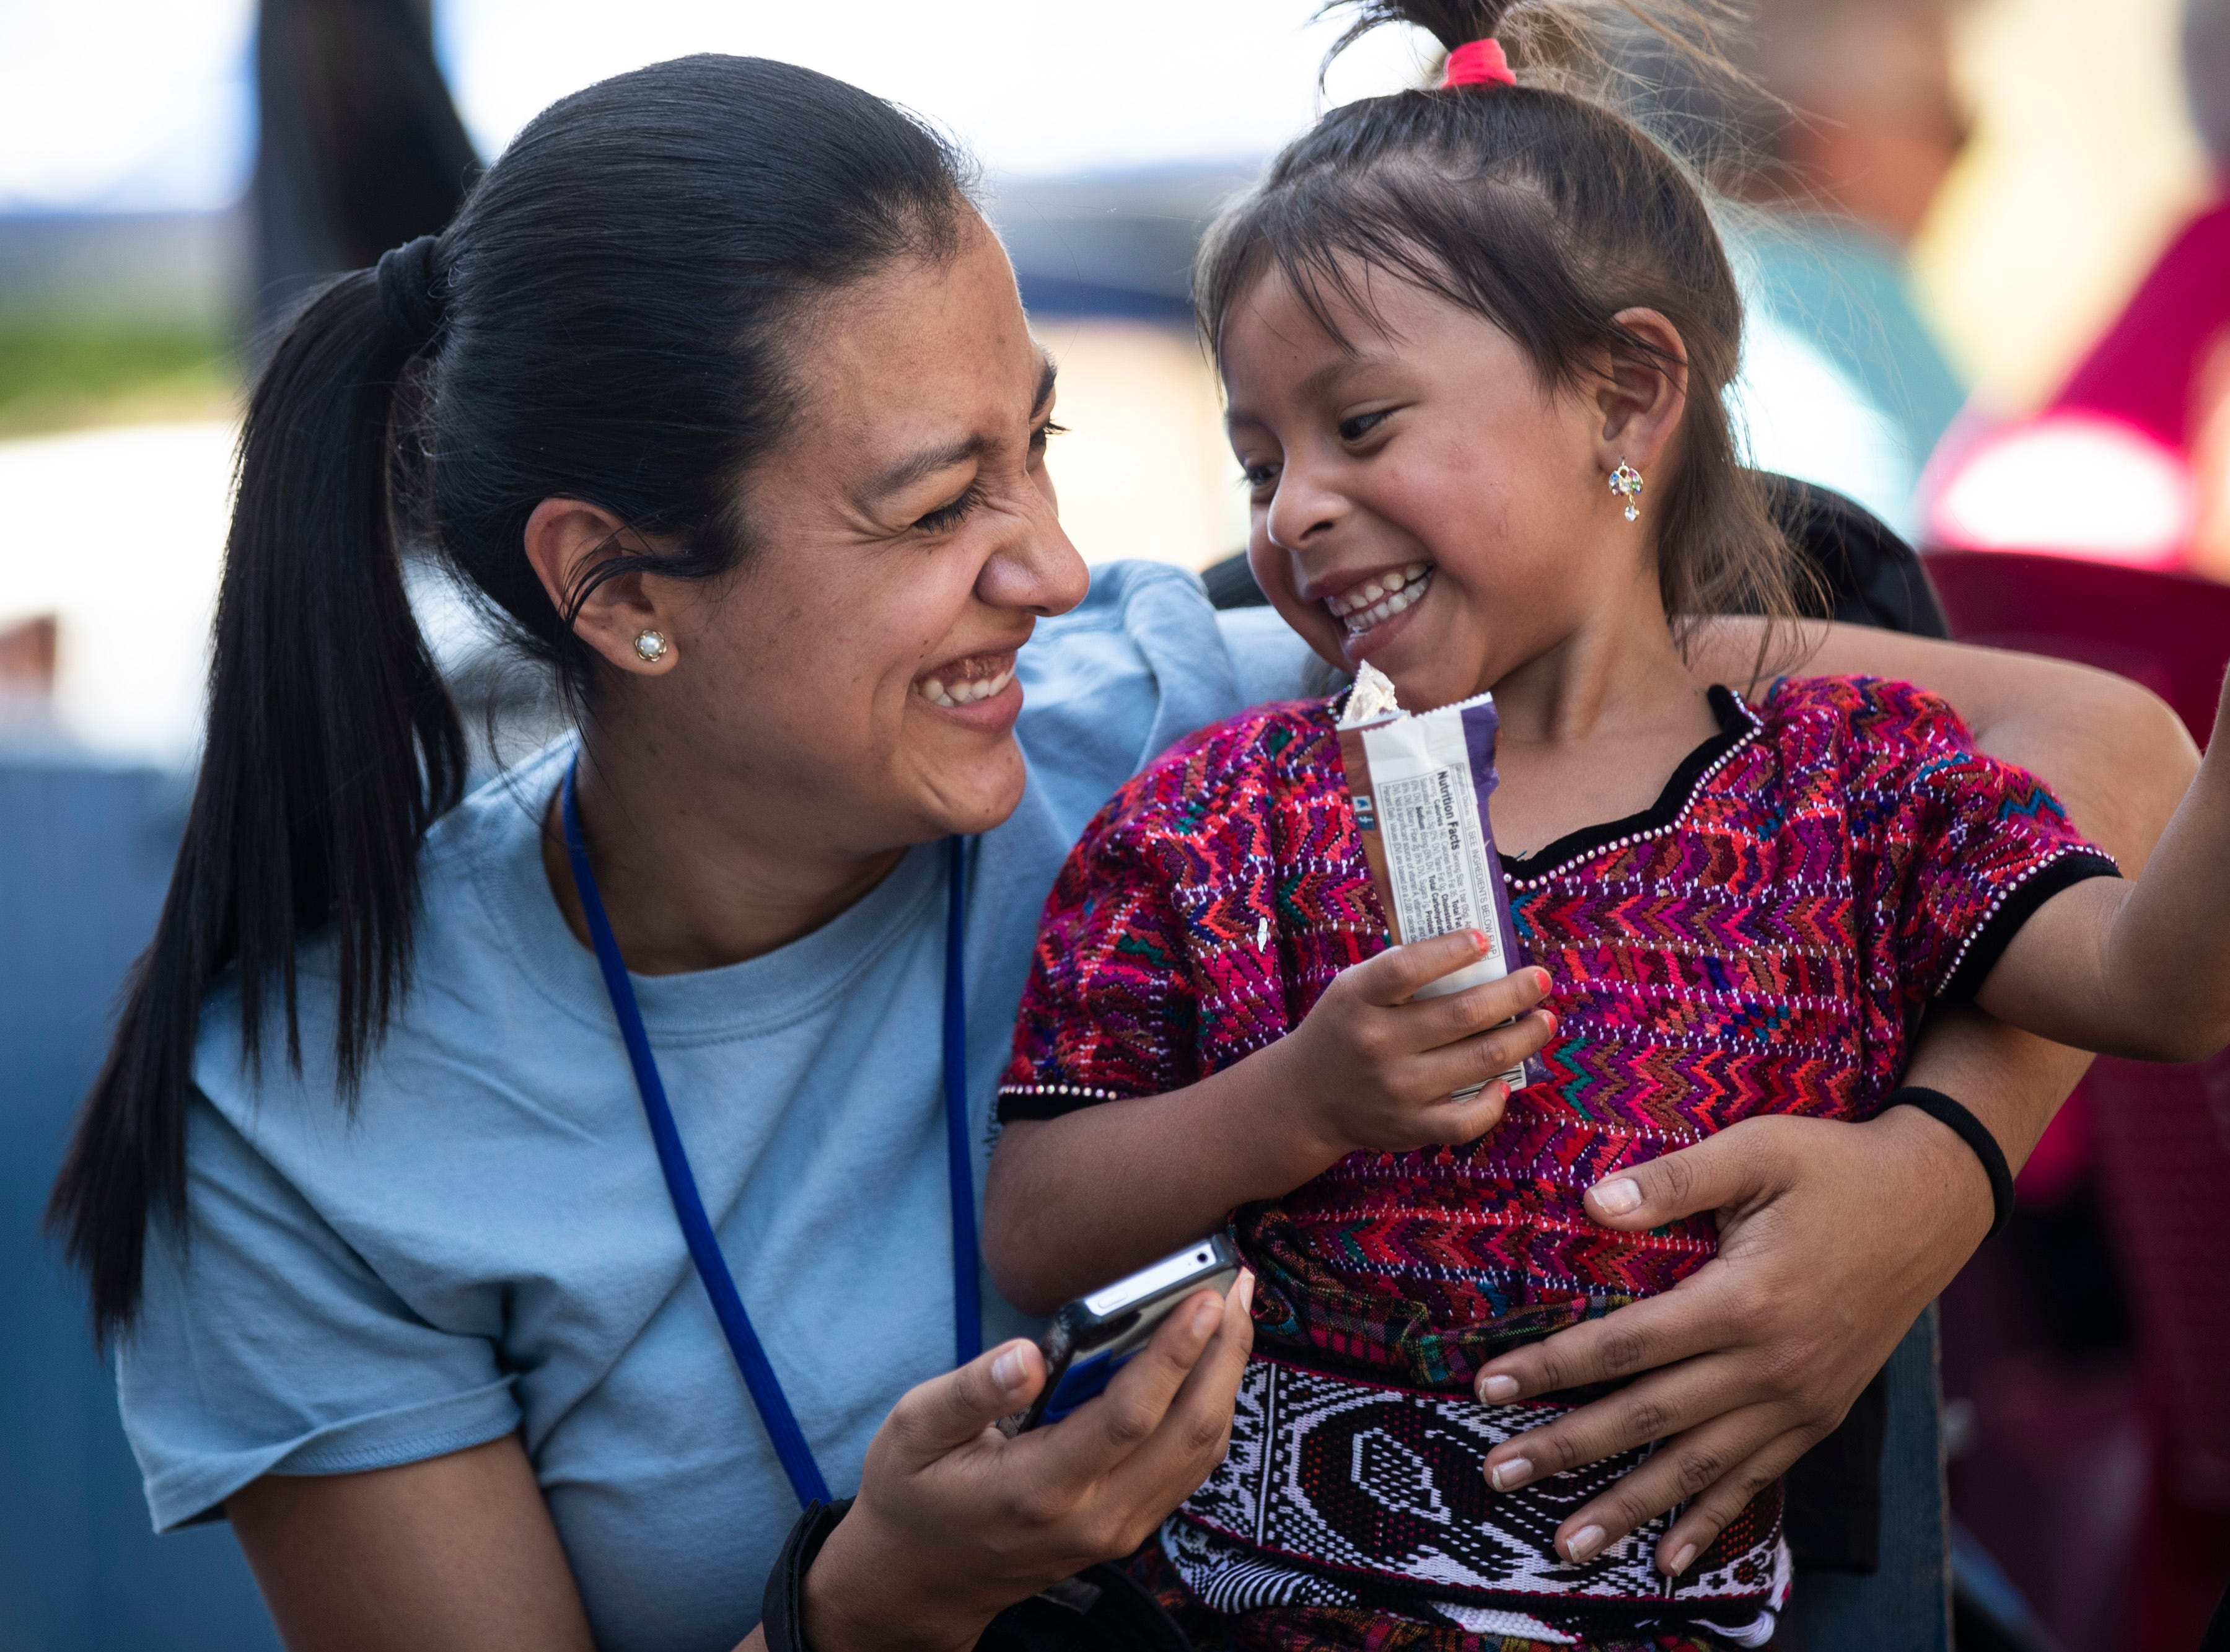 COTA volunteer and former COTA patient Heidy Fernandez, left, has a laugh with a waiting patient outside at Hospital Nacional de Salamá. Jan. 22, 2019